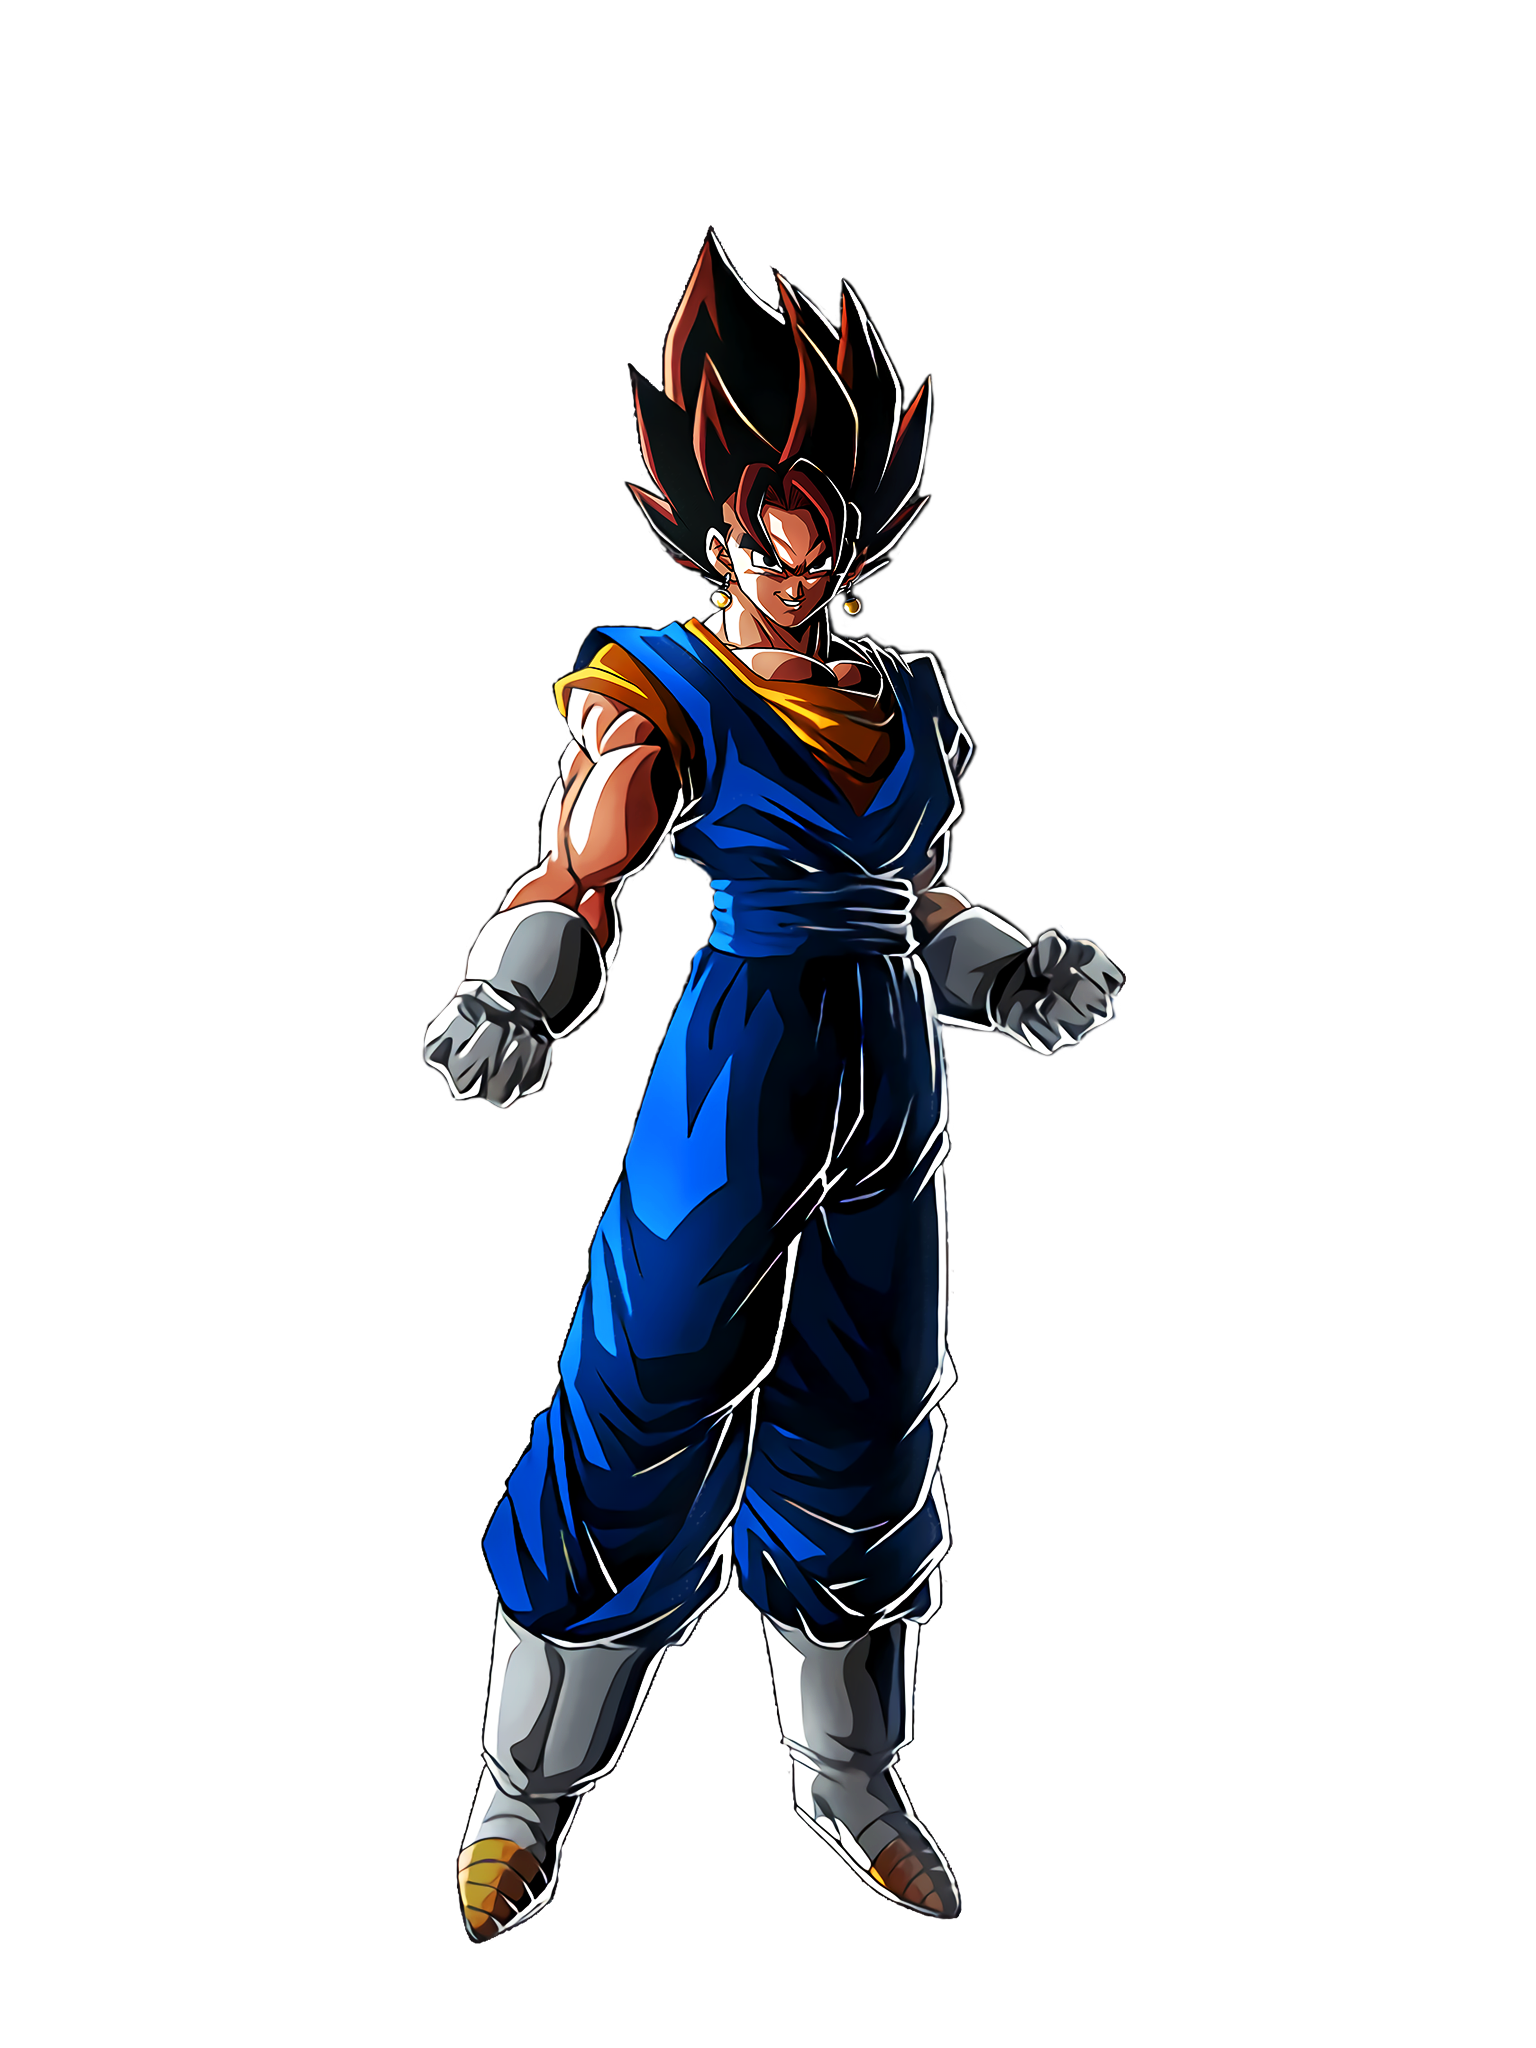 The Ultimate Invincible Fusion Vegito Render (Dragon Ball Z Dokkan Battle) .png